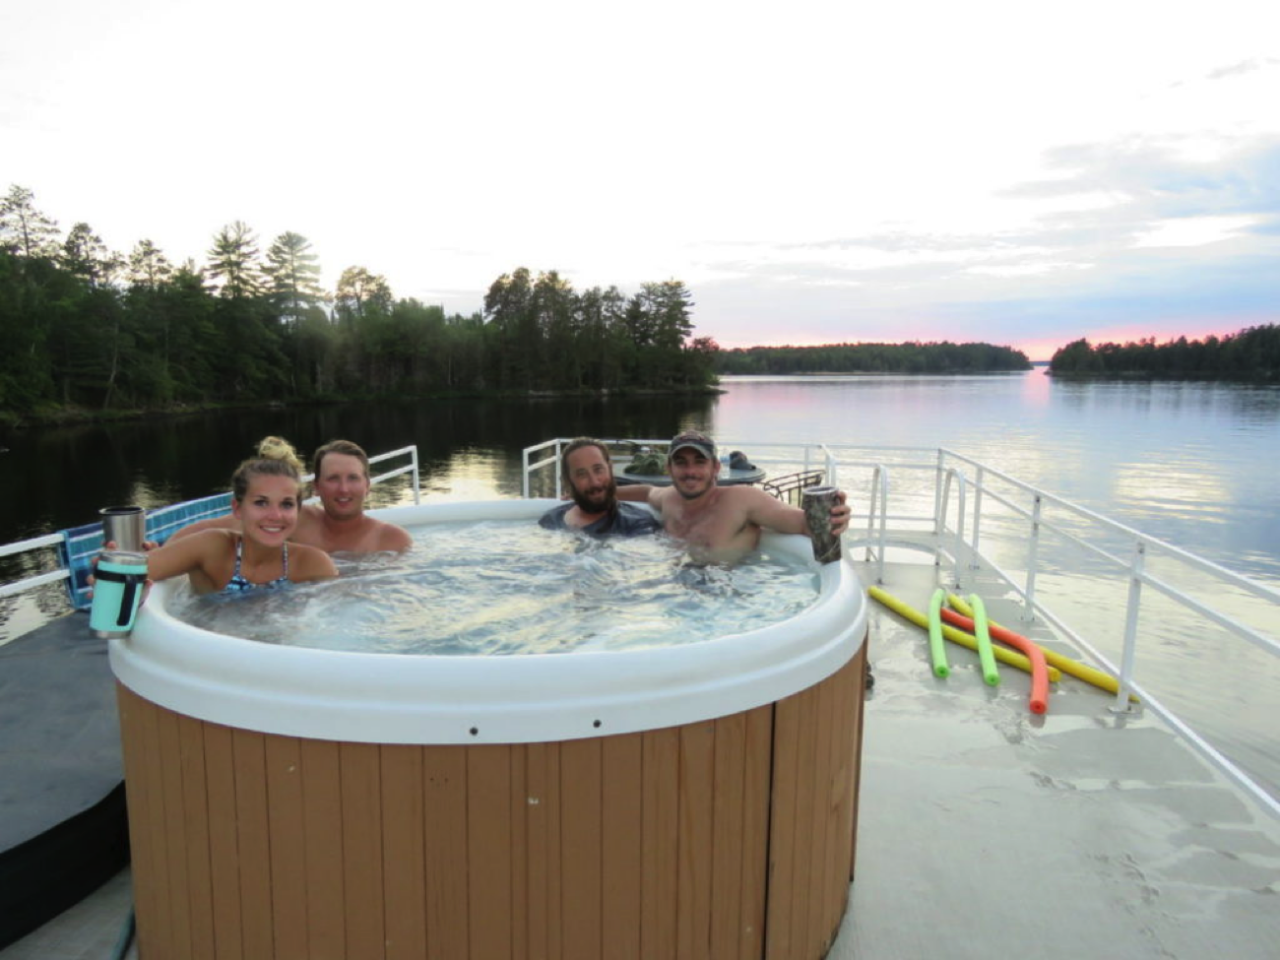 Friends enjoy hot tub at Rainy Lake